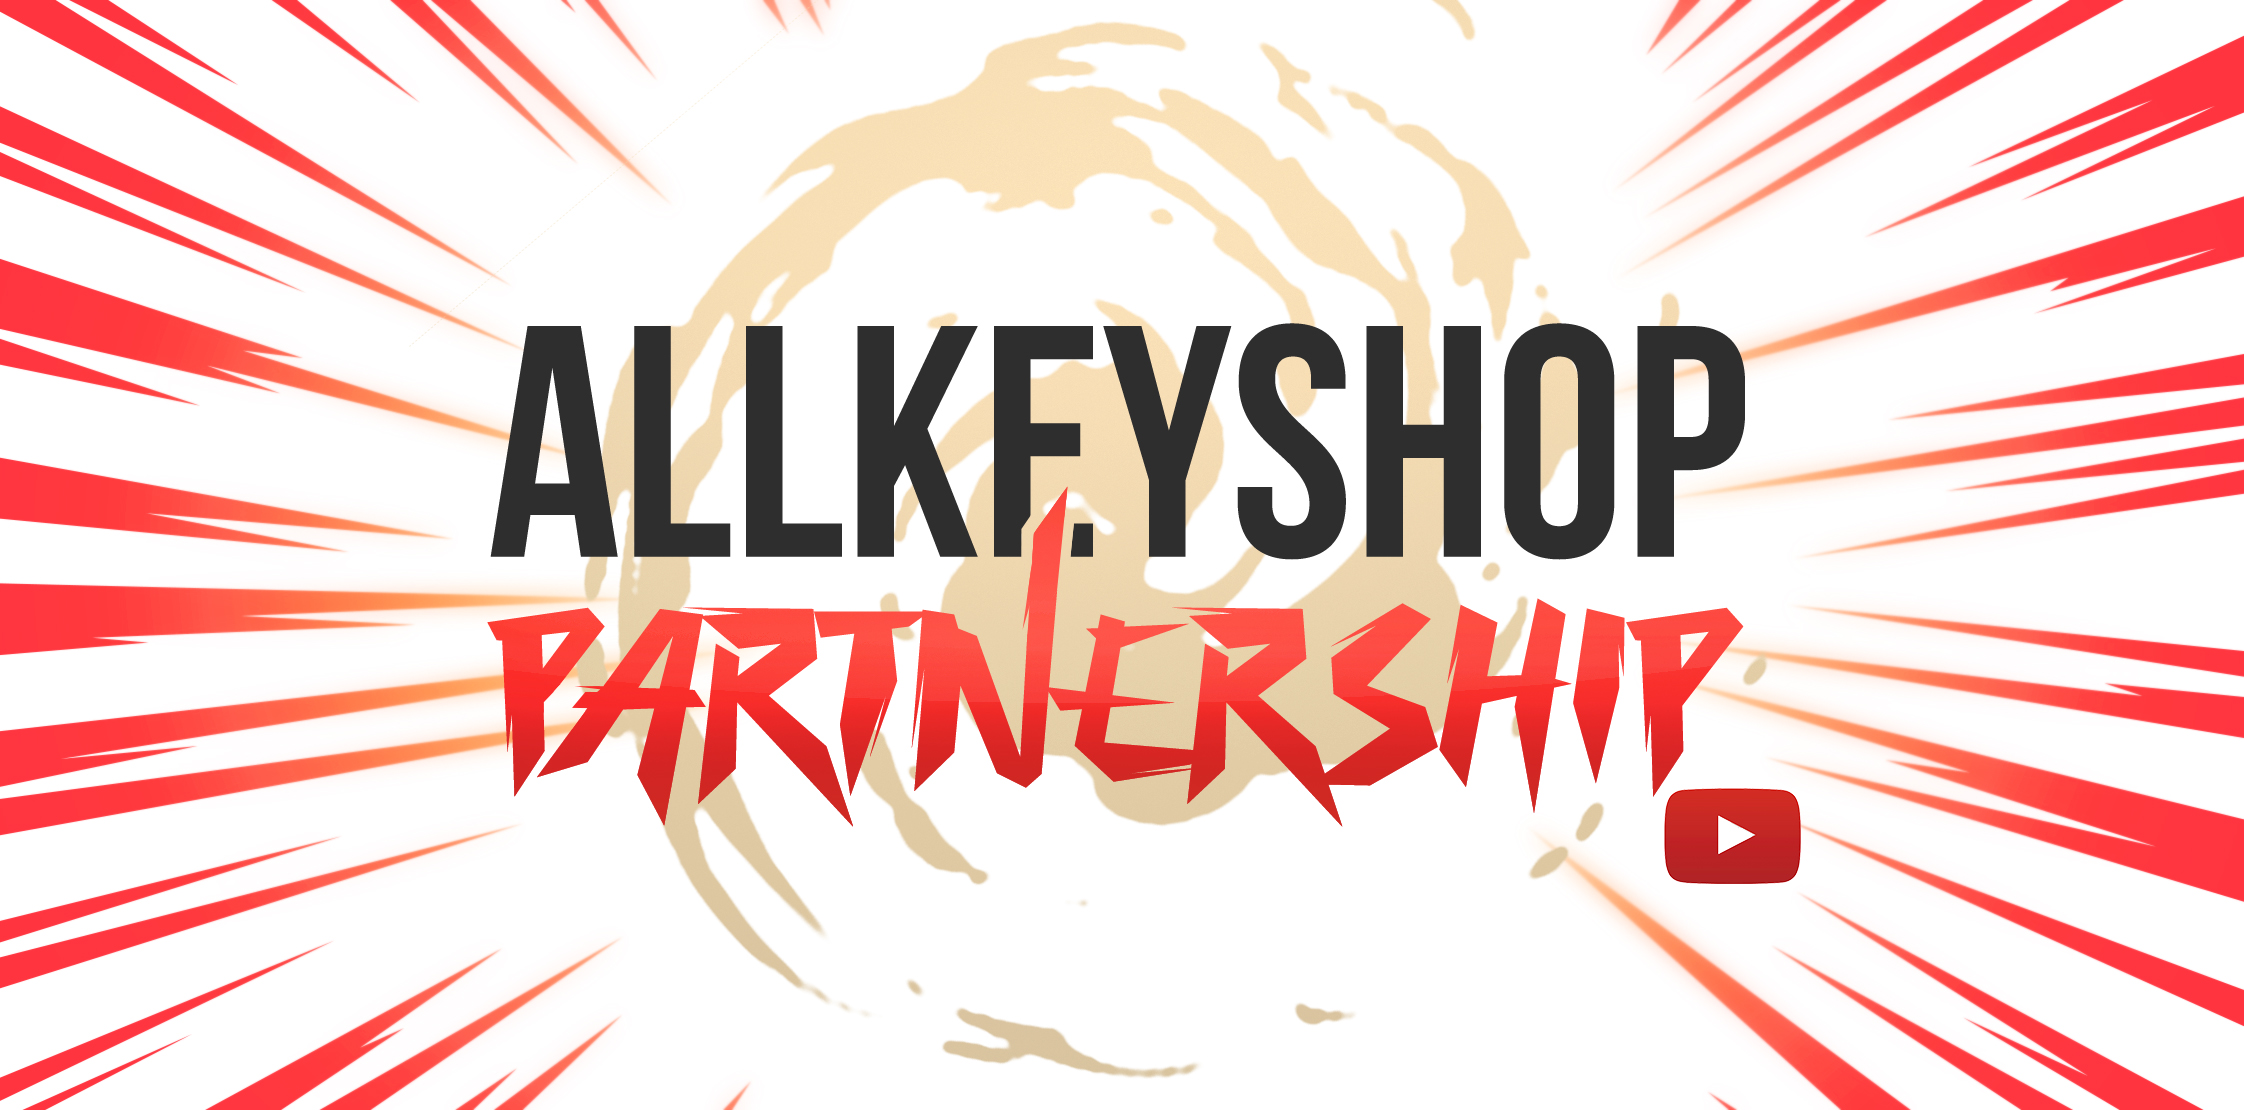 Allkeyshop Youtube Partnership